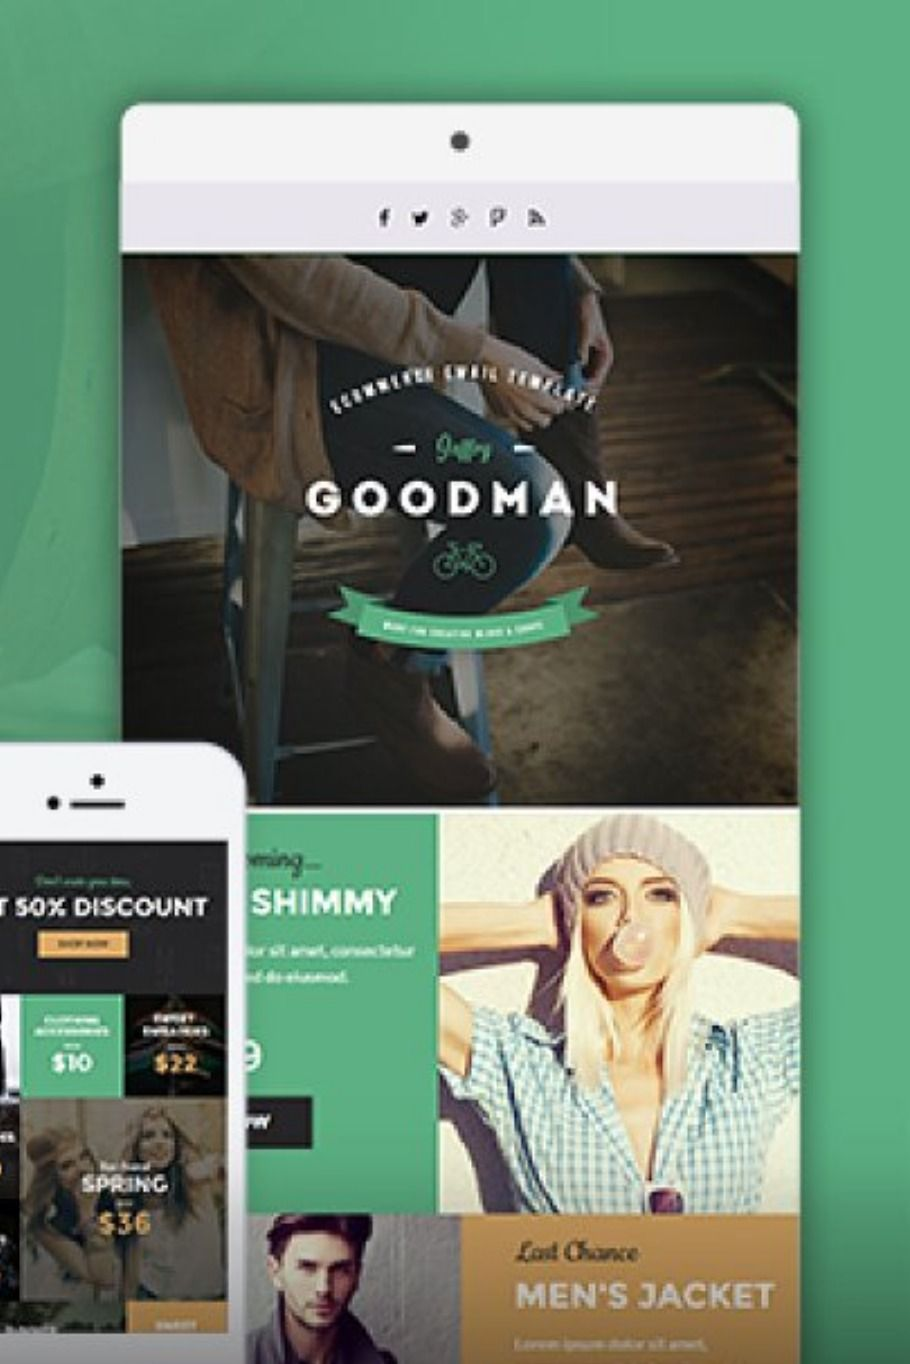 Jg E Commerce Newsletter Template With Images Email Templates Newsletter Templates Email Marketing Template